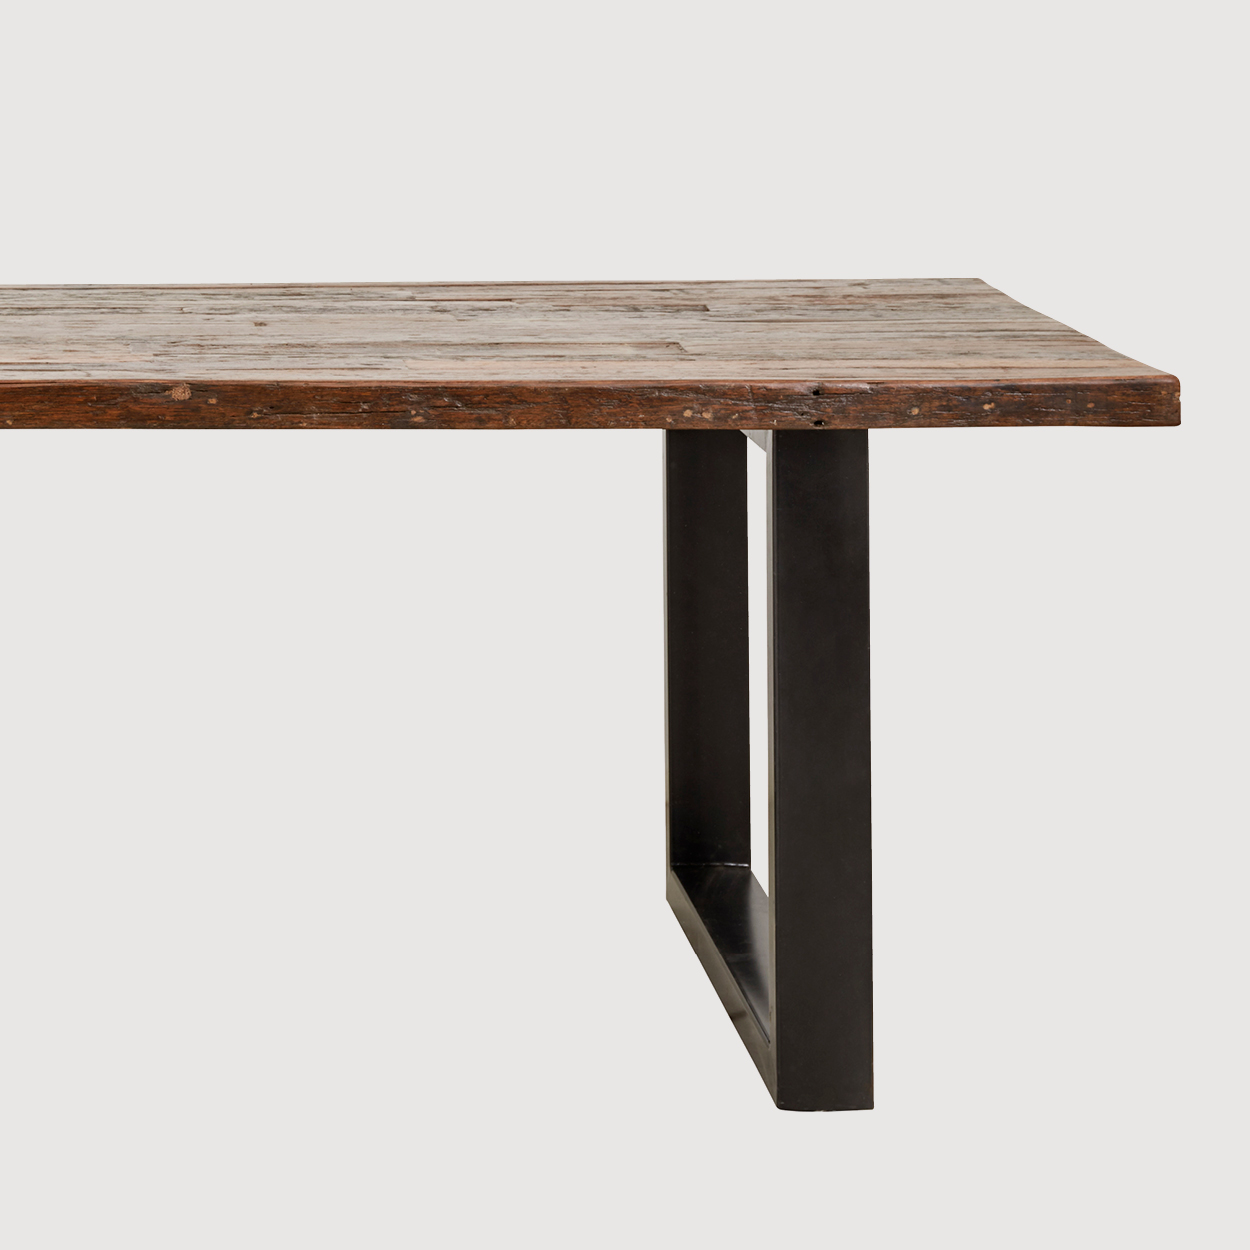 Brewery Recycled Wood Dining Table gallery image